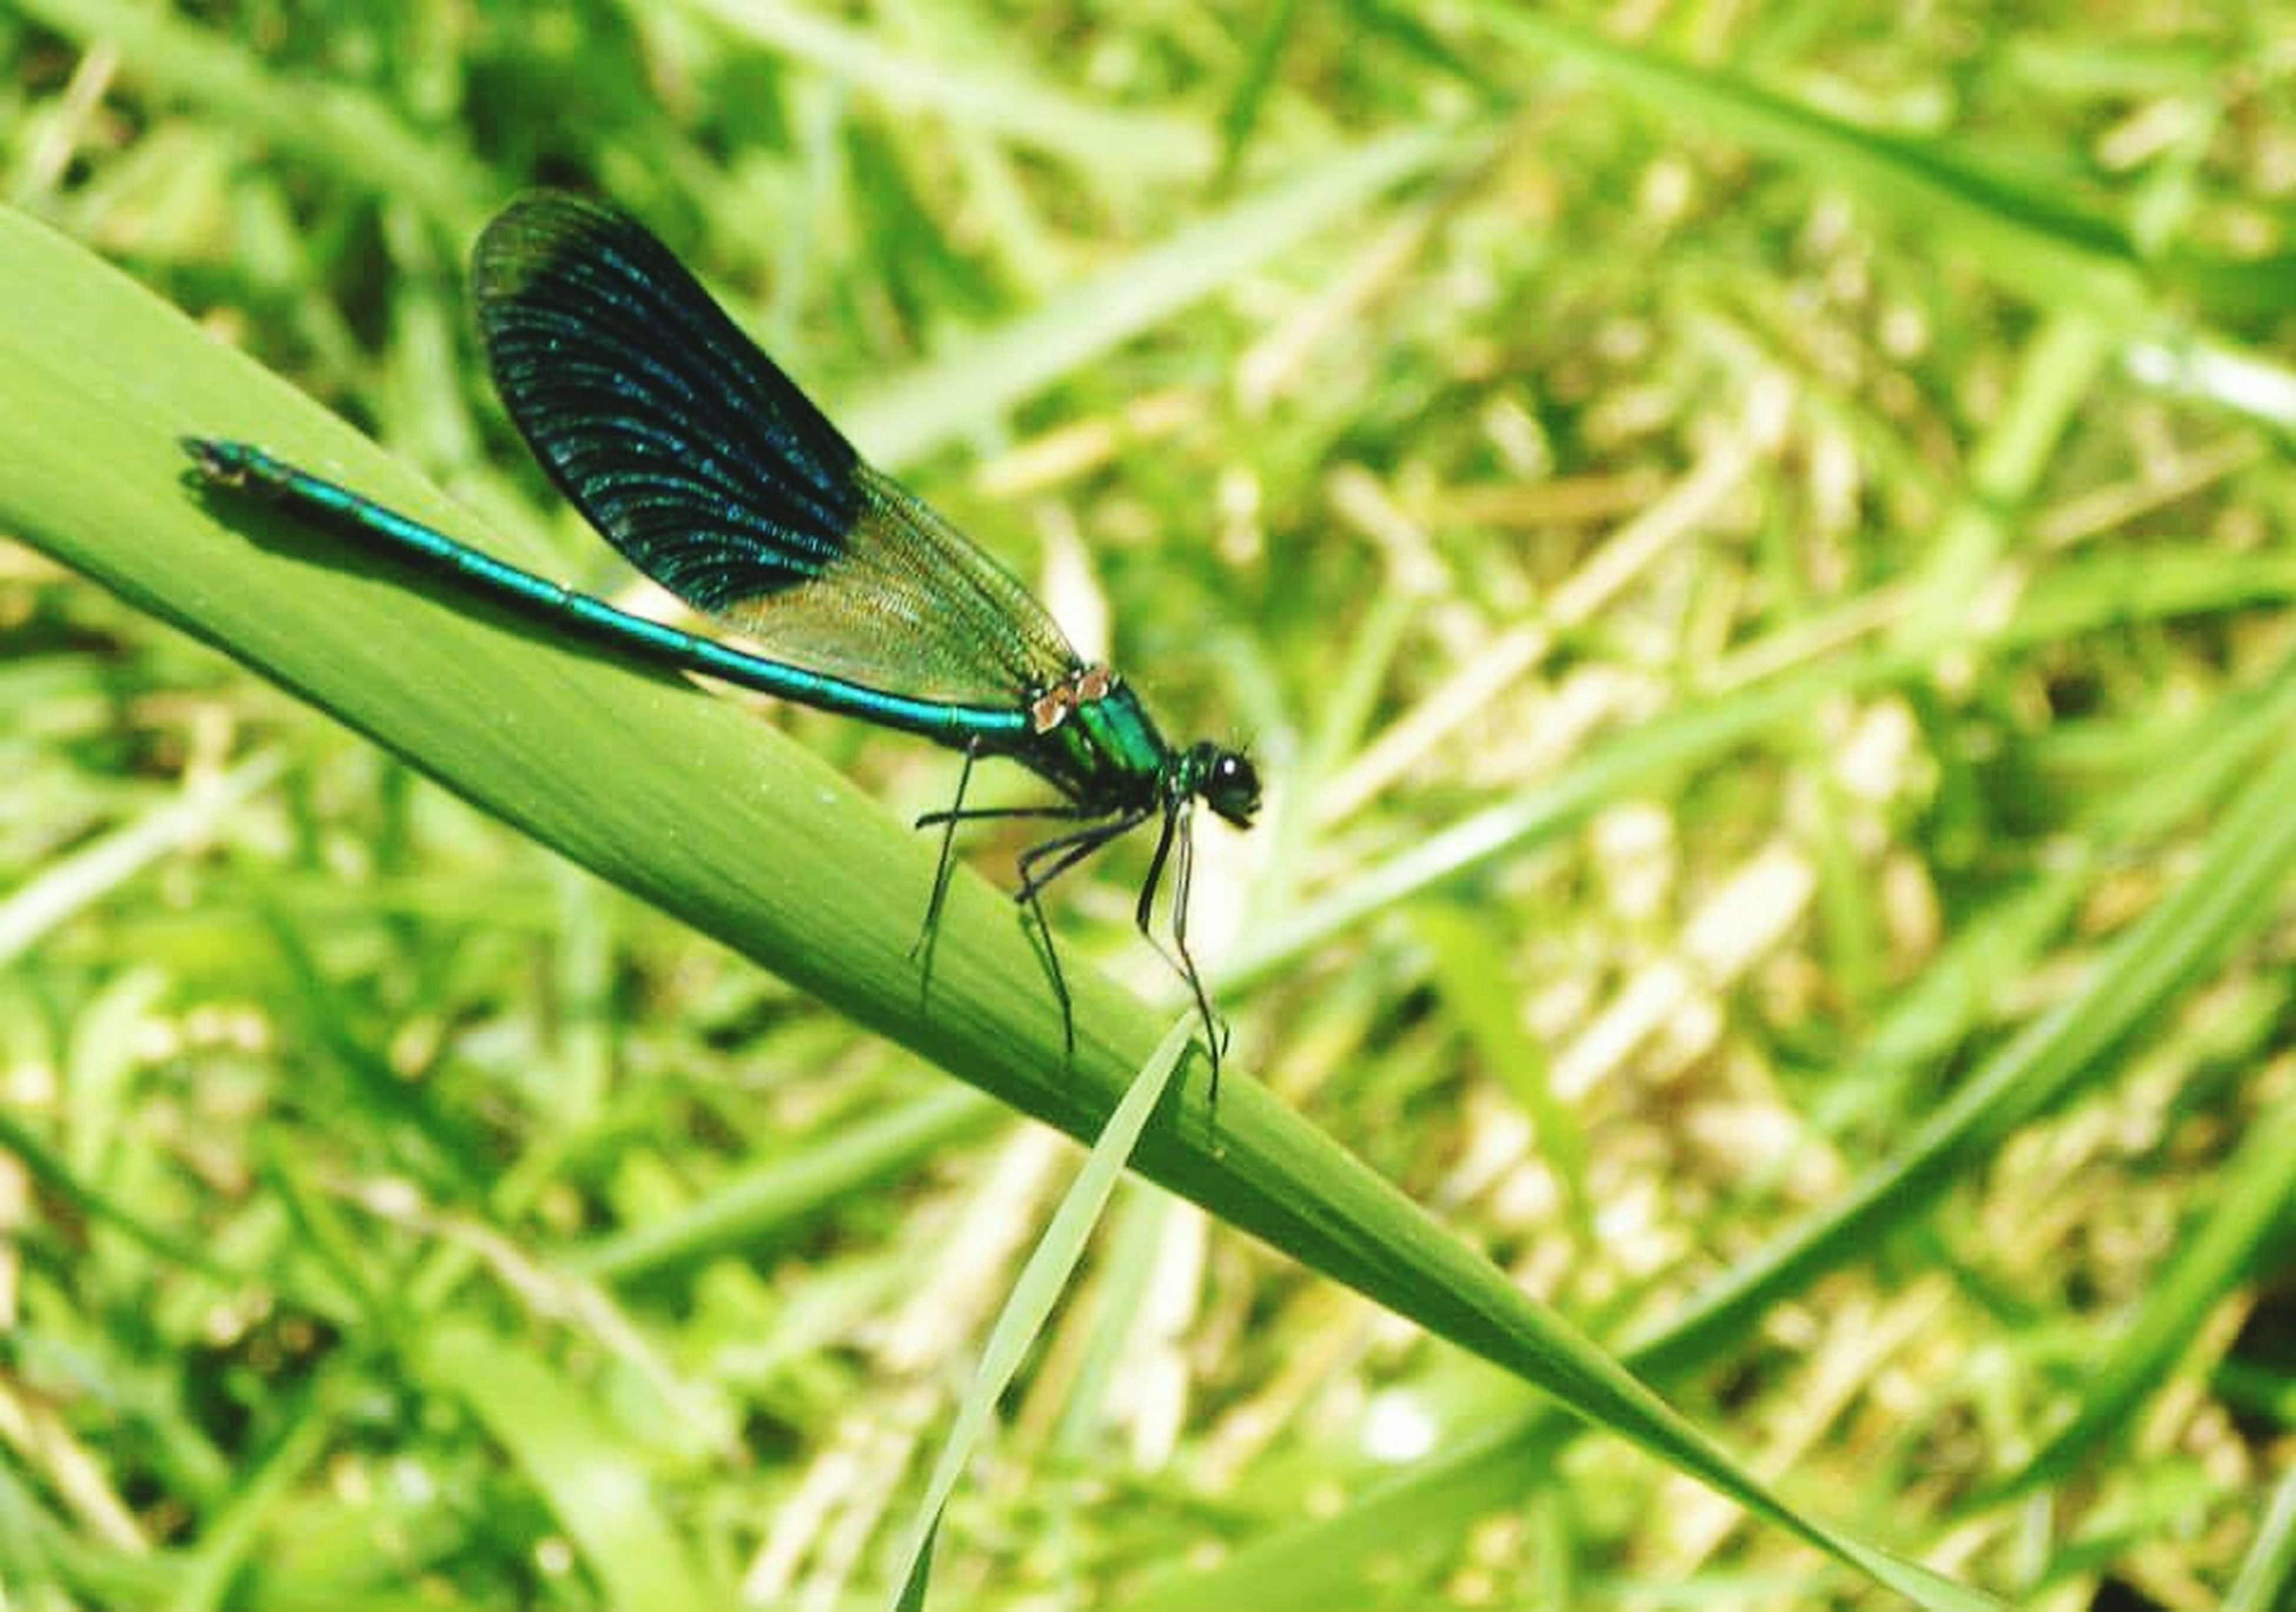 animals in the wild, insect, animal themes, one animal, wildlife, close-up, focus on foreground, dragonfly, green color, plant, selective focus, damselfly, nature, outdoors, day, blade of grass, animal wing, no people, animal behavior, zoology